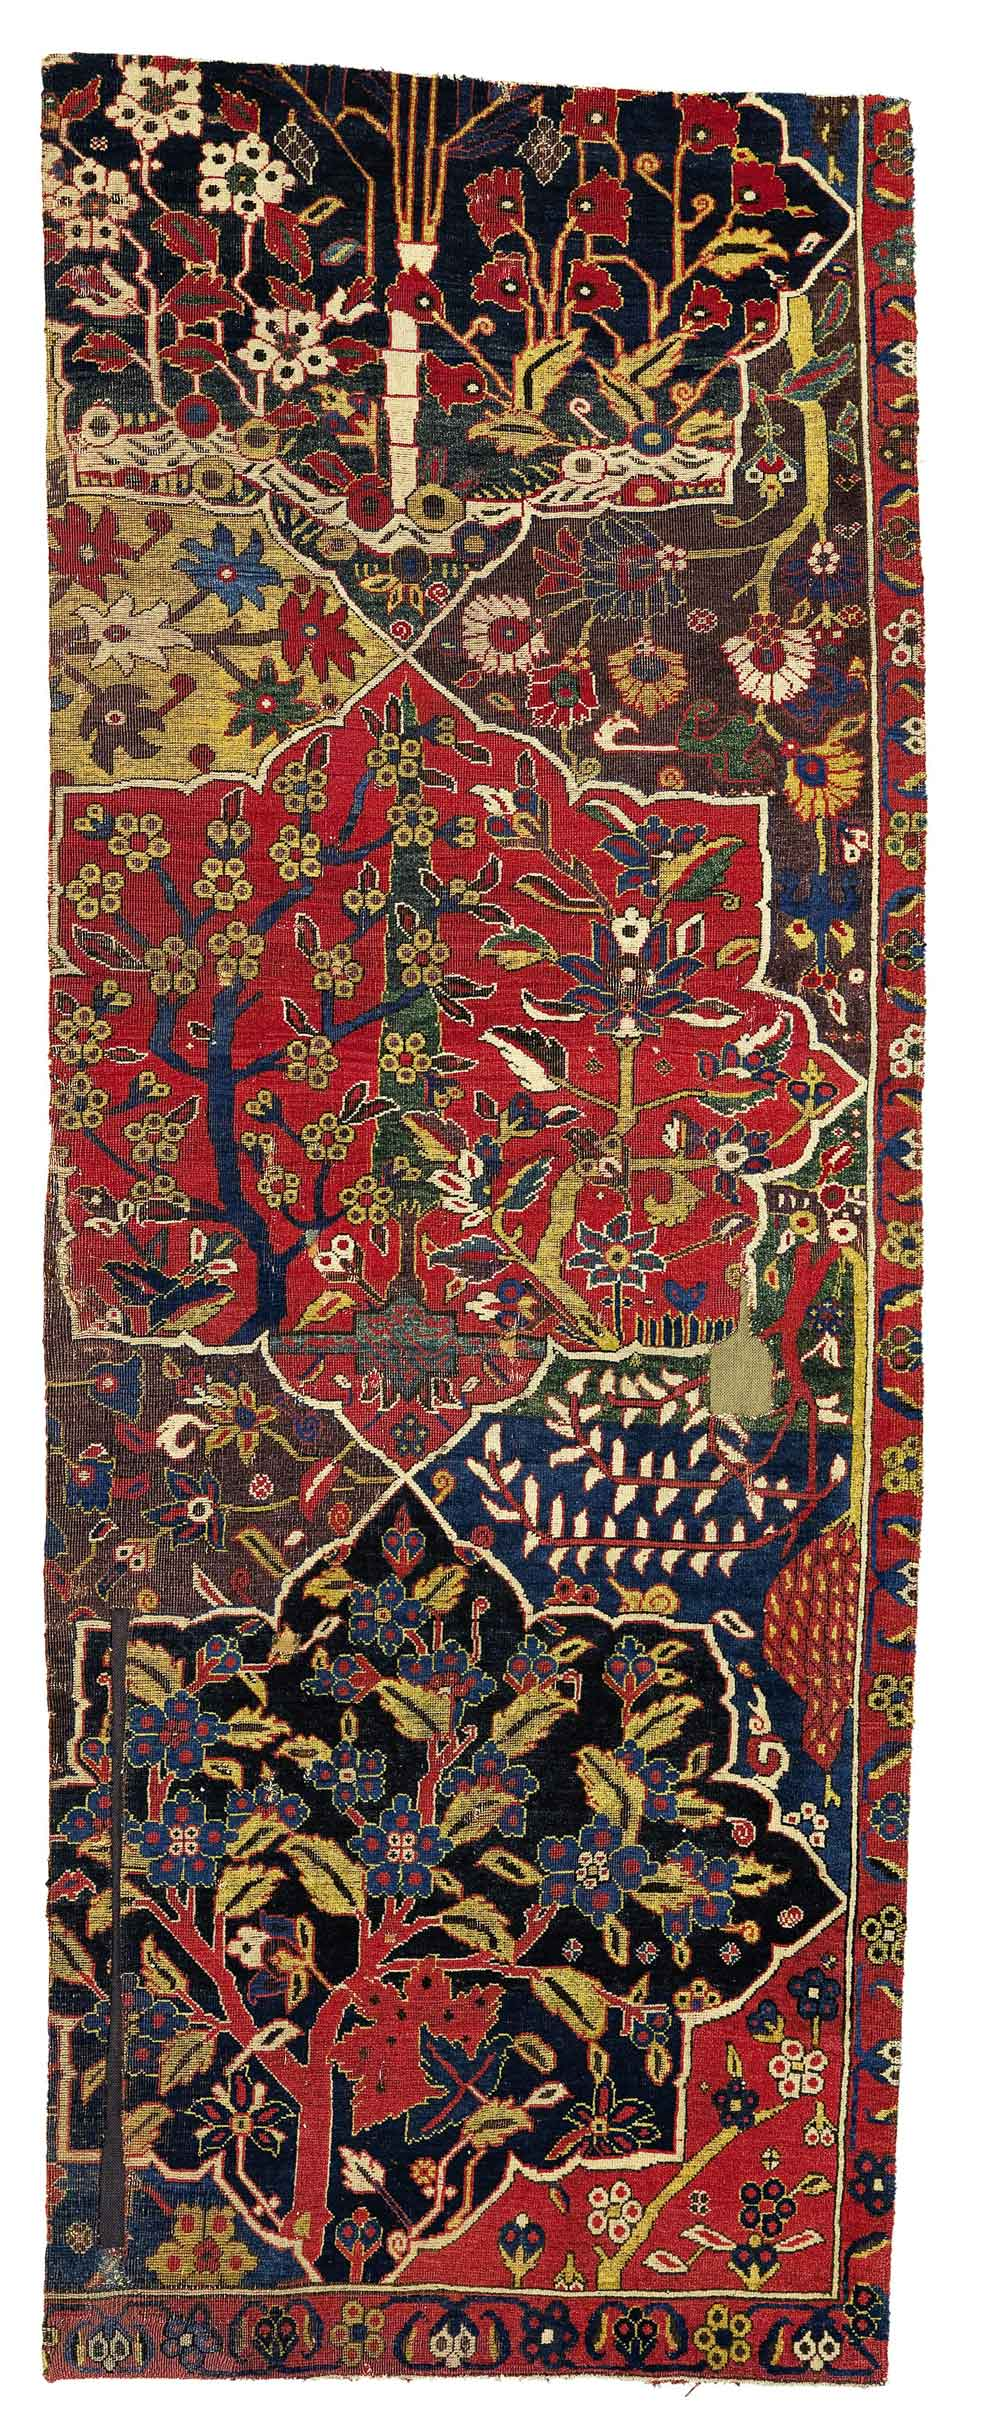 Sotheby S New York To Sell Distinguished Carpets On 31